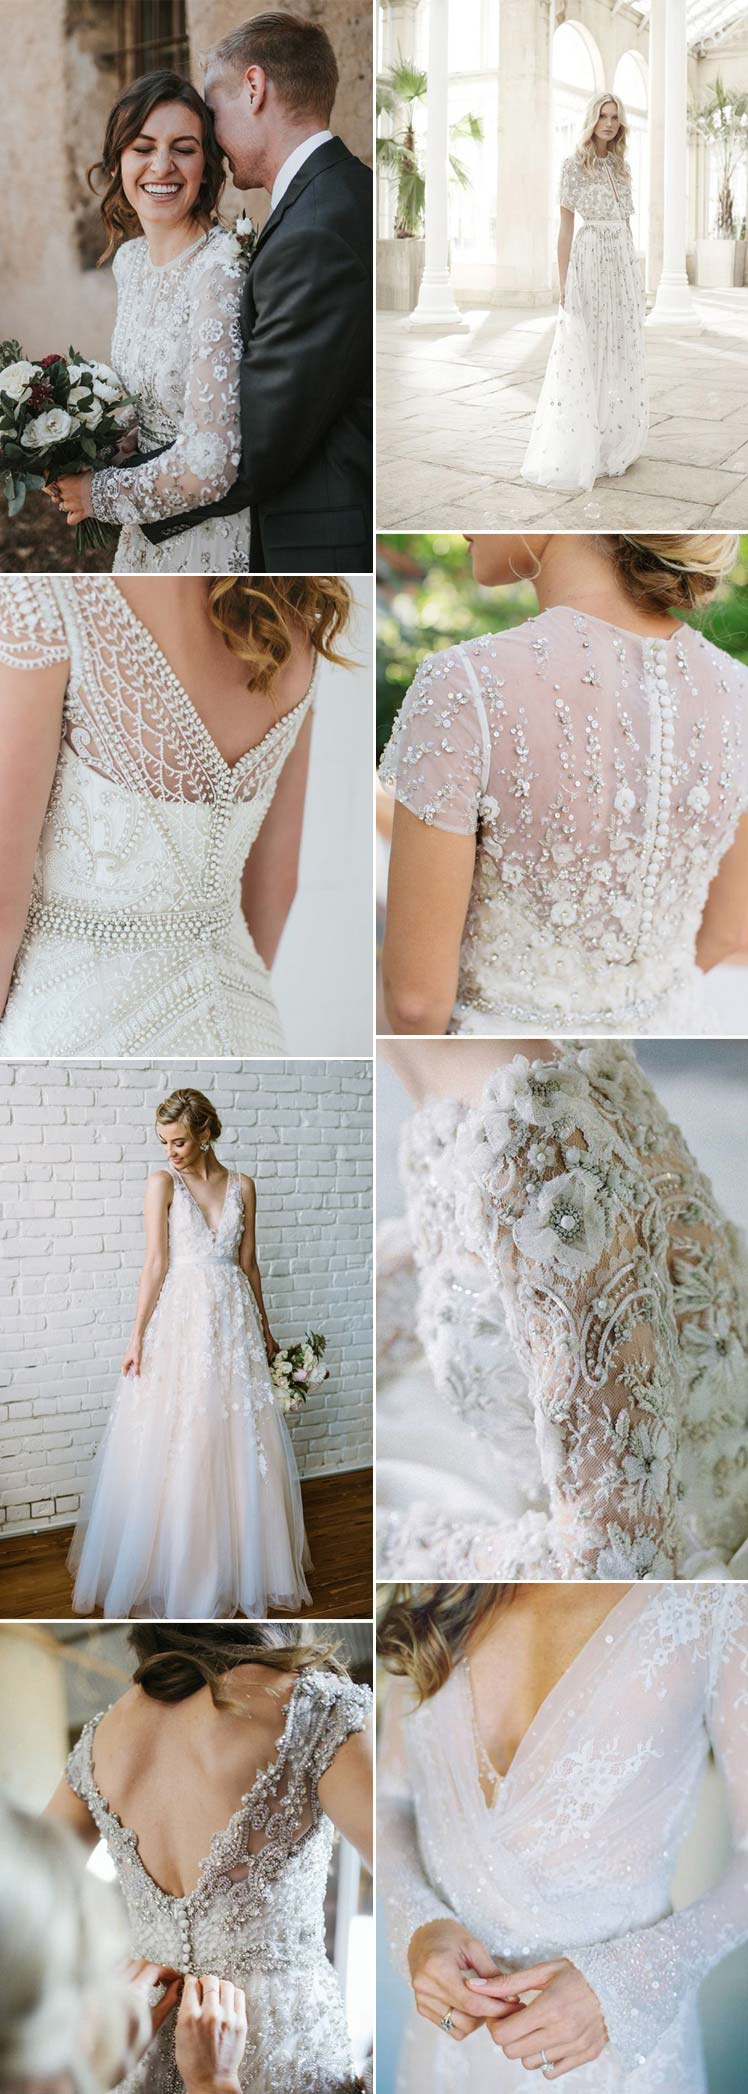 heavily detailed wedding dresses